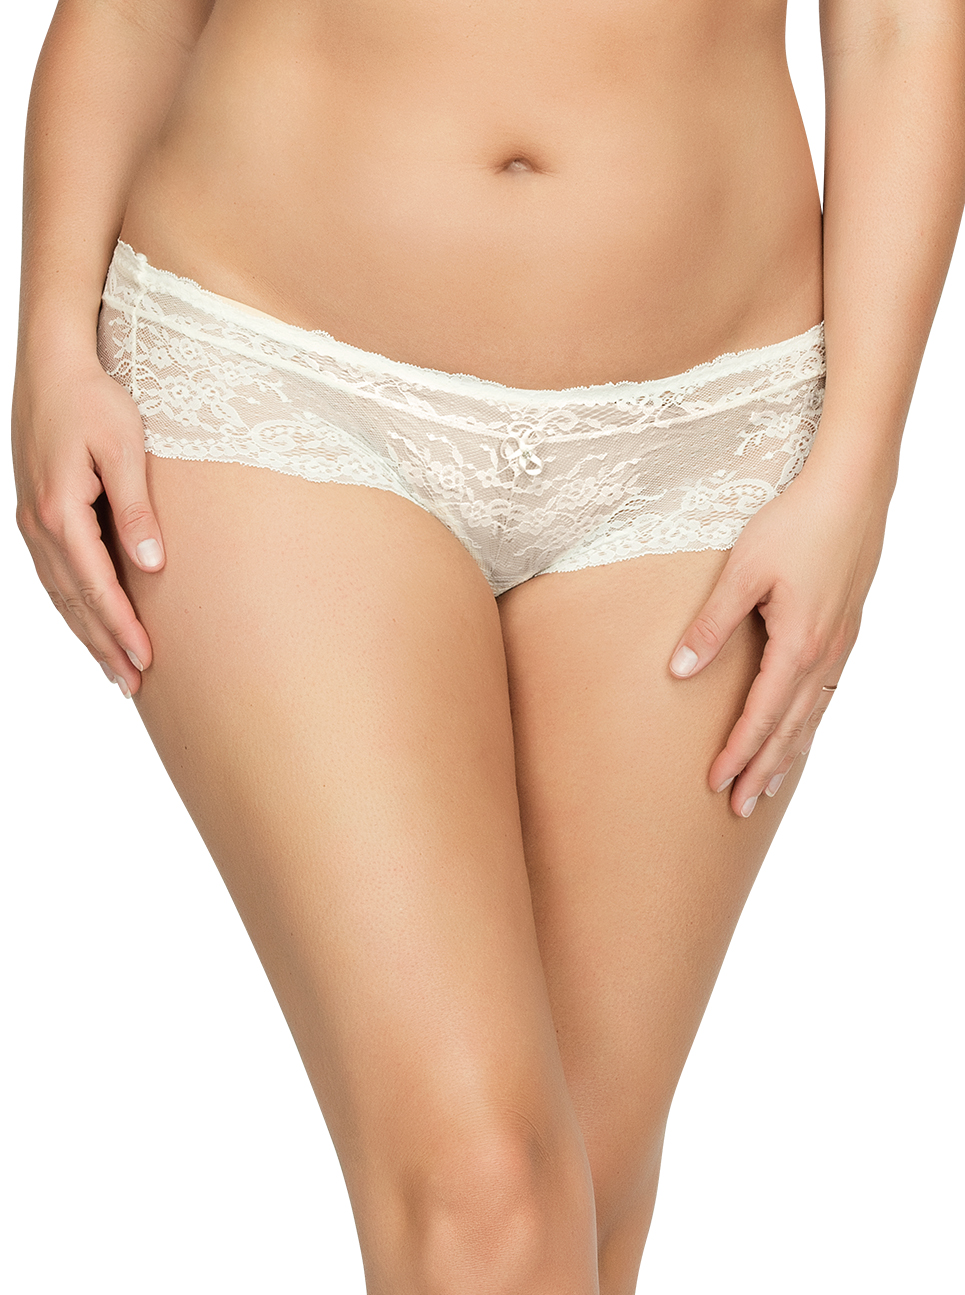 PARFAIT Sandrine HipsterP5355 Ivory Front - Sandrine Hipster - Ivory - P5355